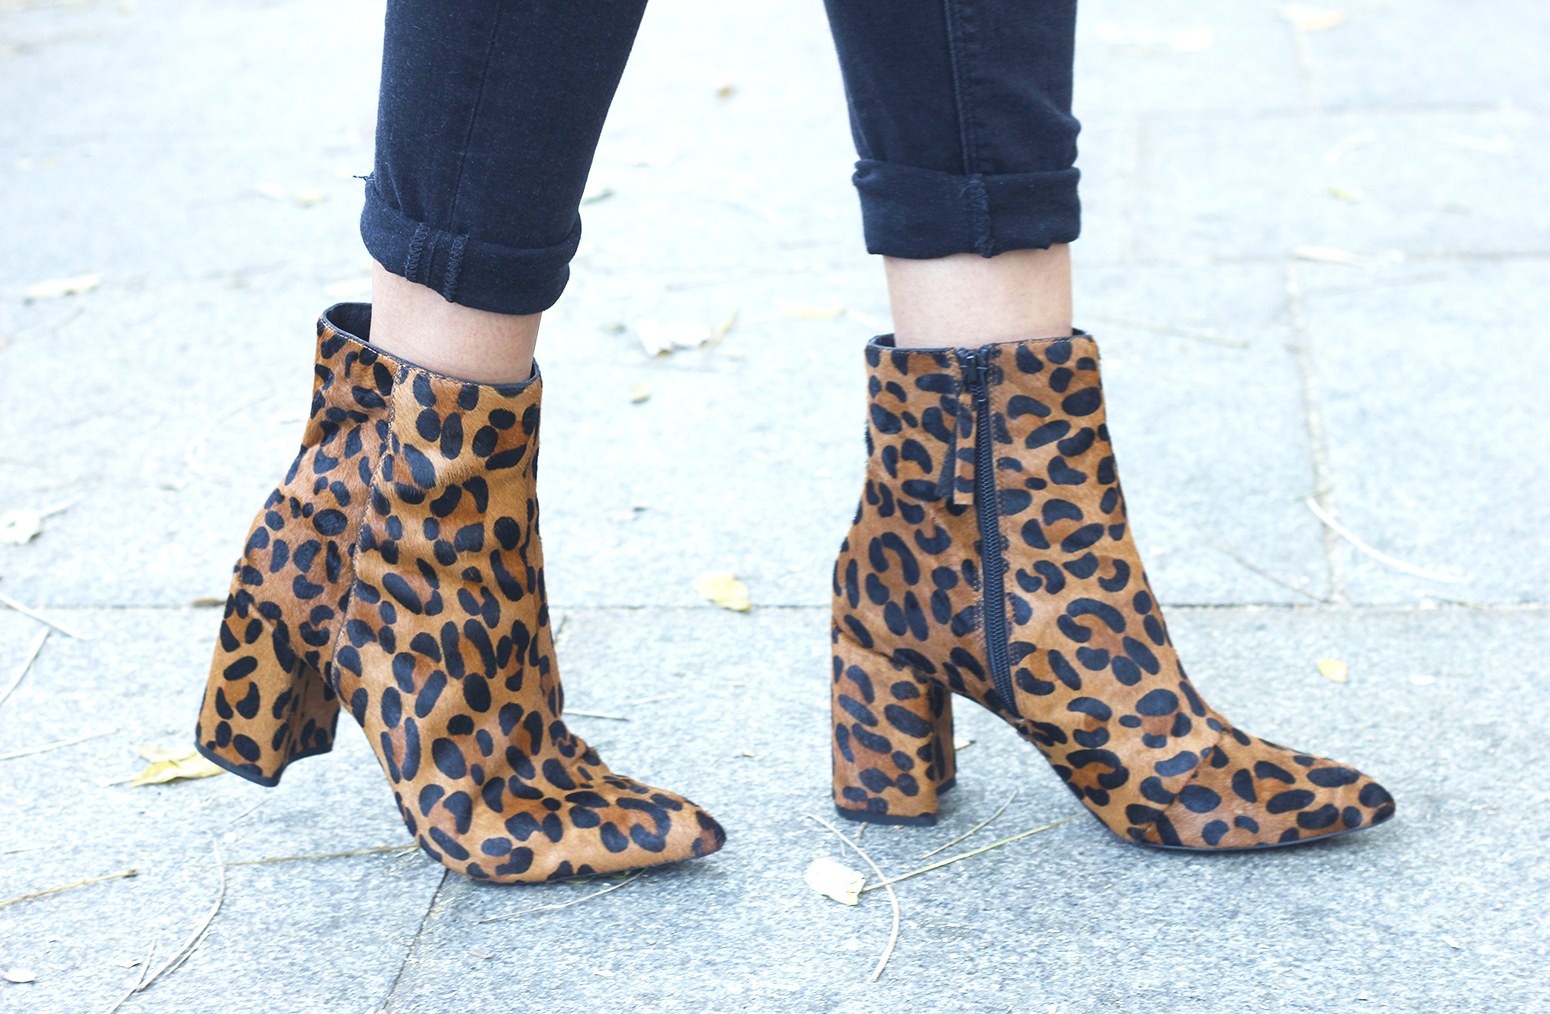 Leopard Booties cardigan ripped jeans outfit fall style fashion19